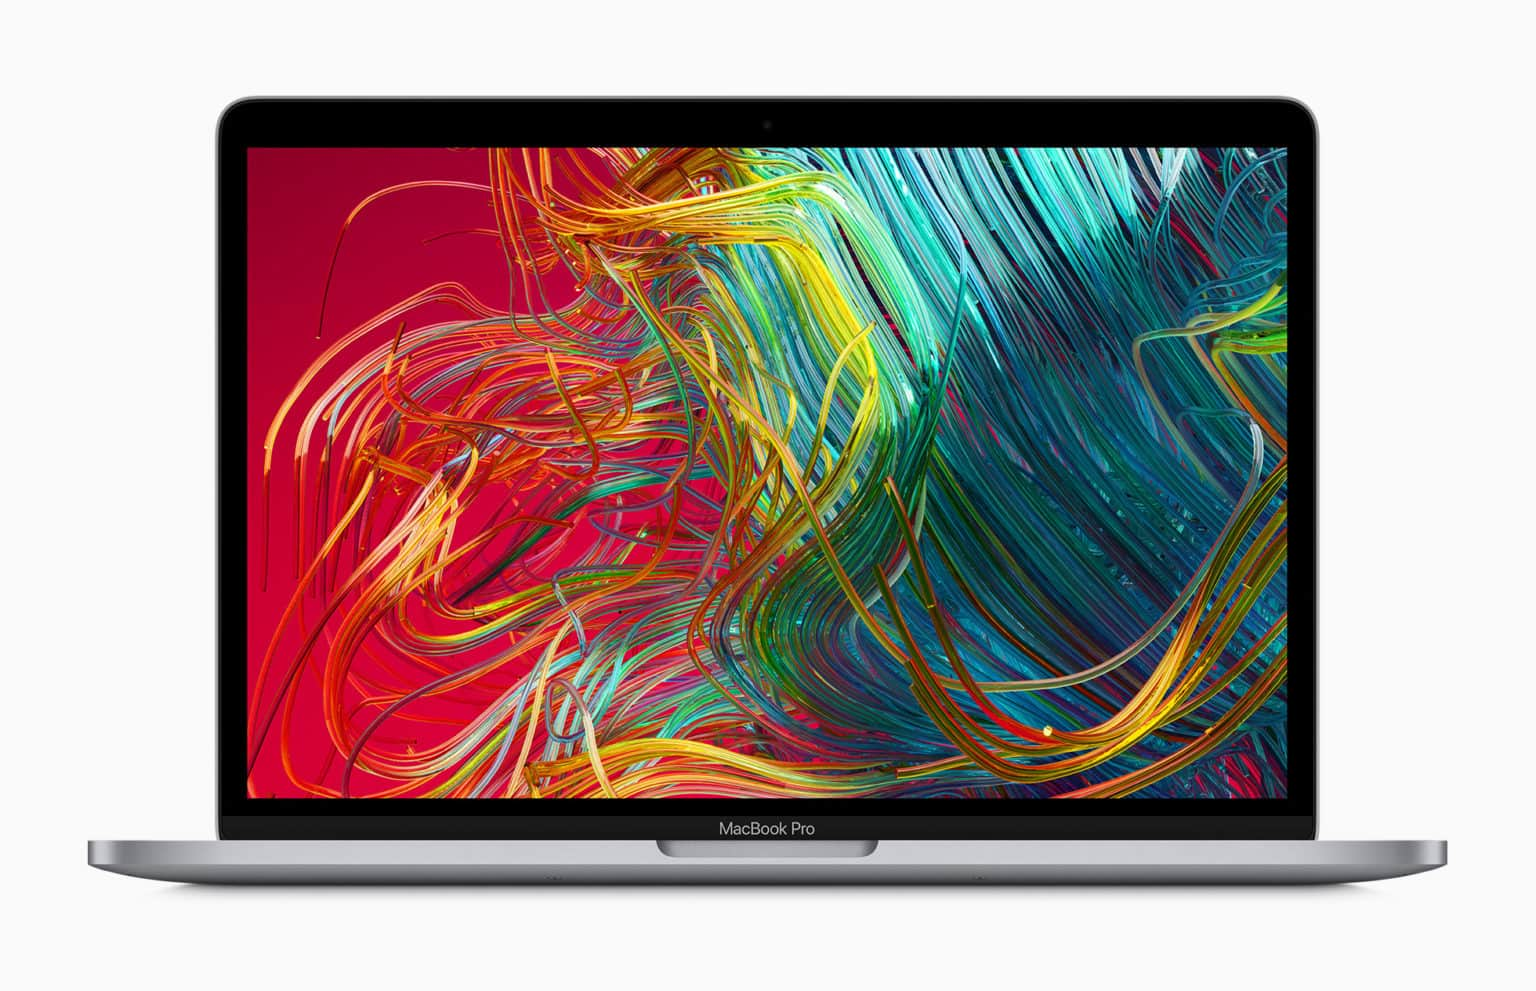 Apple_macbook_pro-13-inch-with-retina-display_screen_05042020